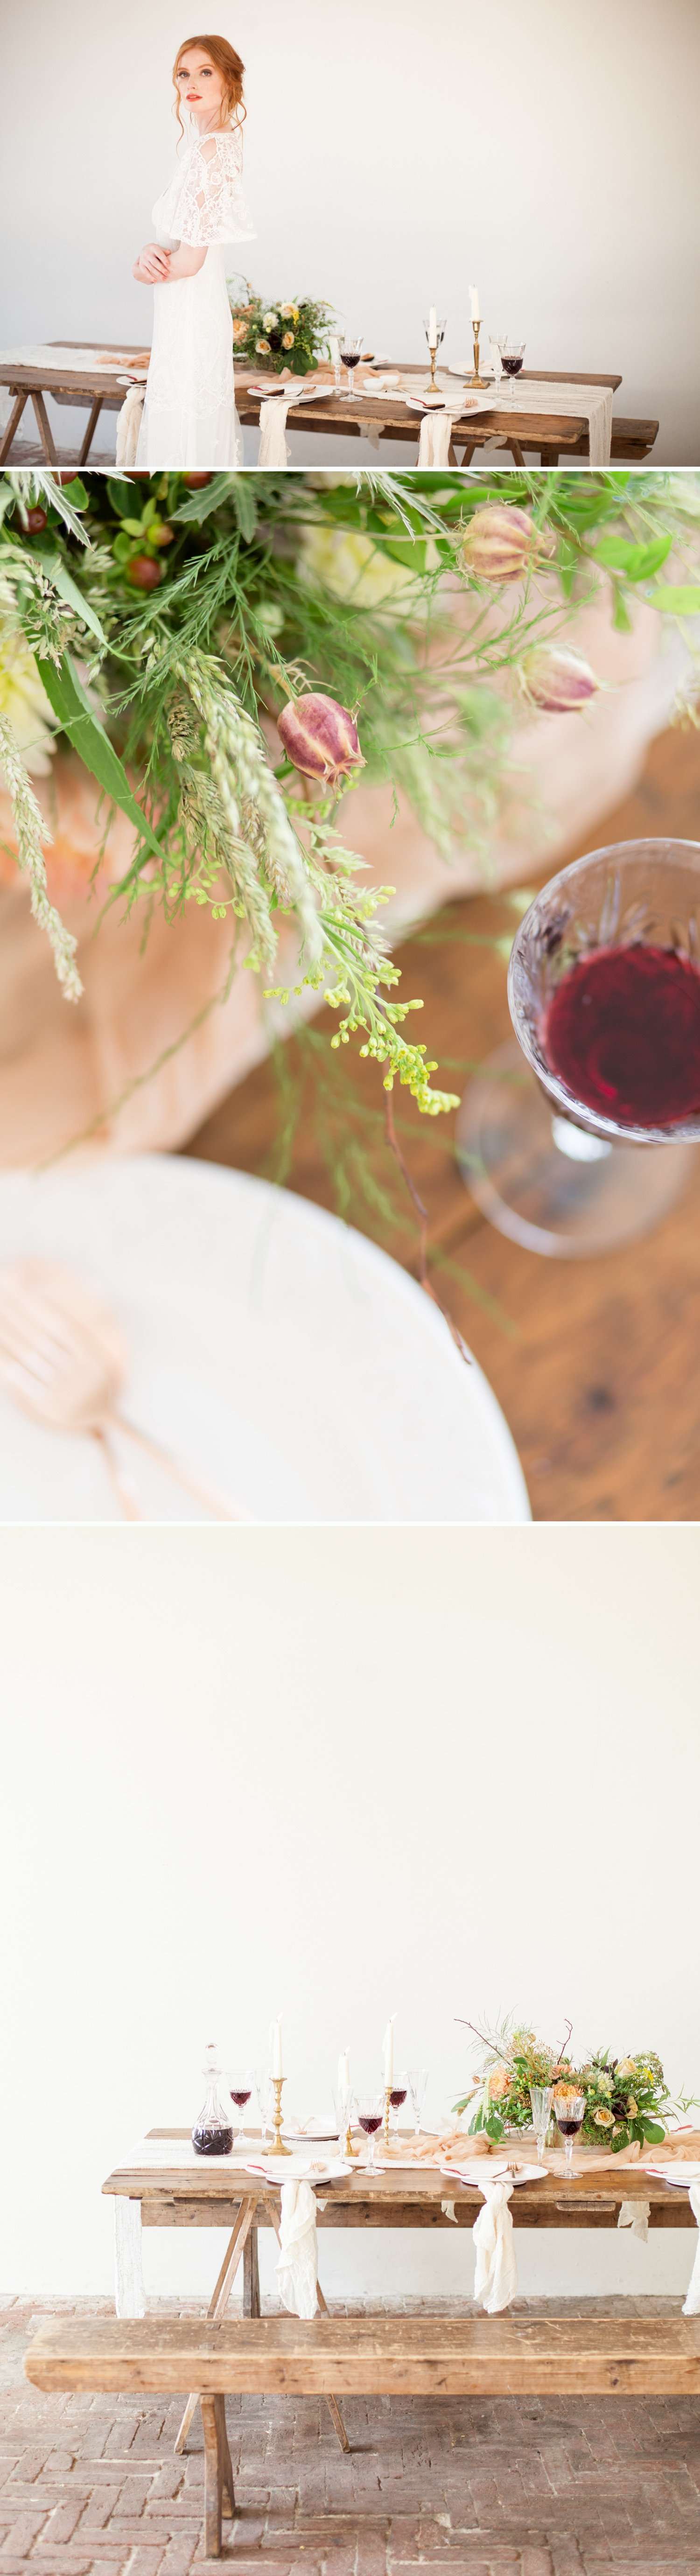 West Sussex Wedding Photographer - a Fine Art styled wedding tablescape